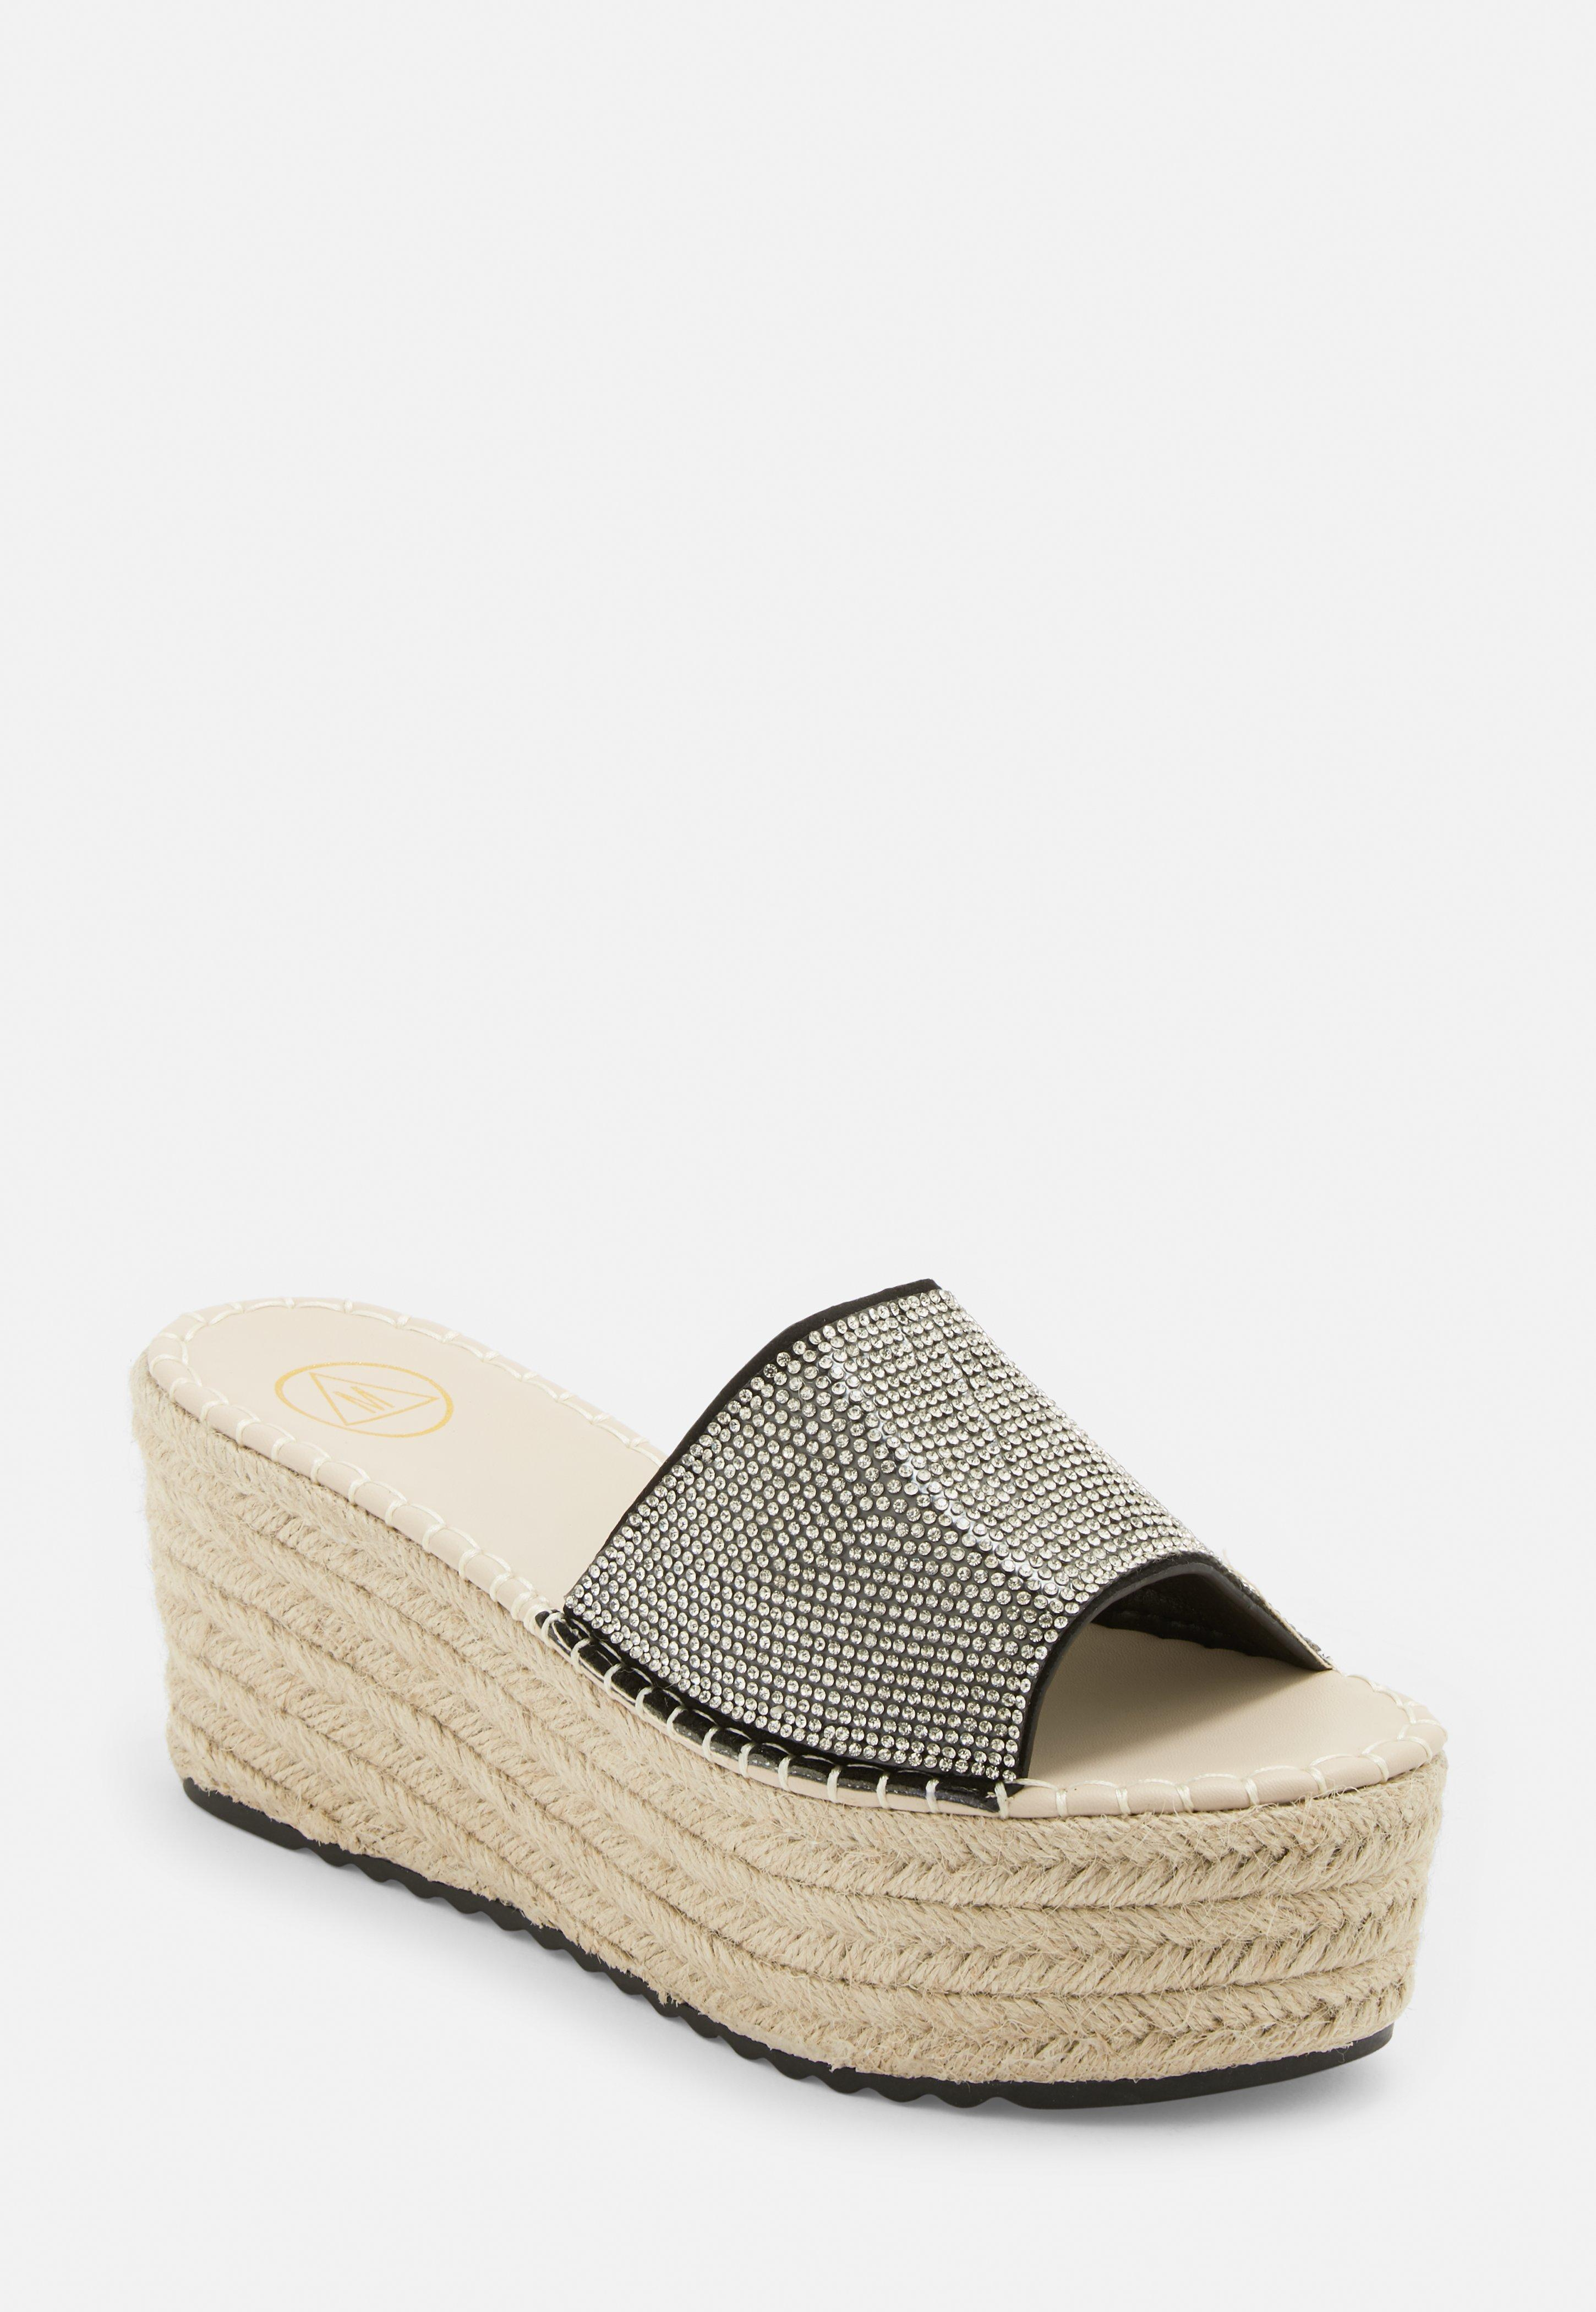 c3f9f6880cb61 Cheap Shoes | Sale Heels for Women - Missguided